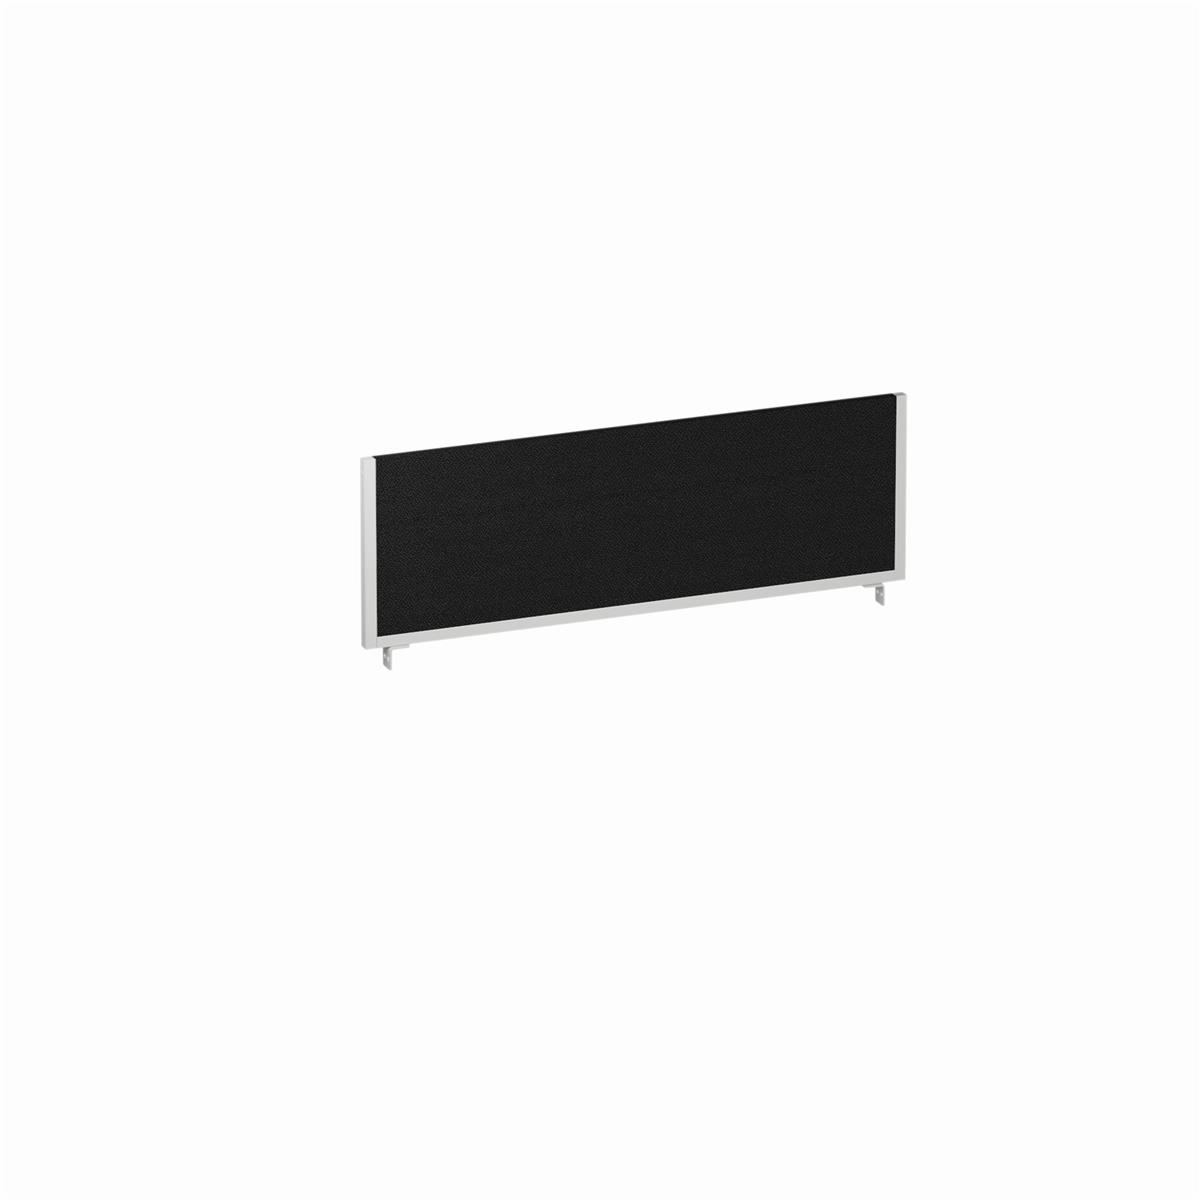 Image for Trexus Desk Screen 1200mm Black with Silver Frame